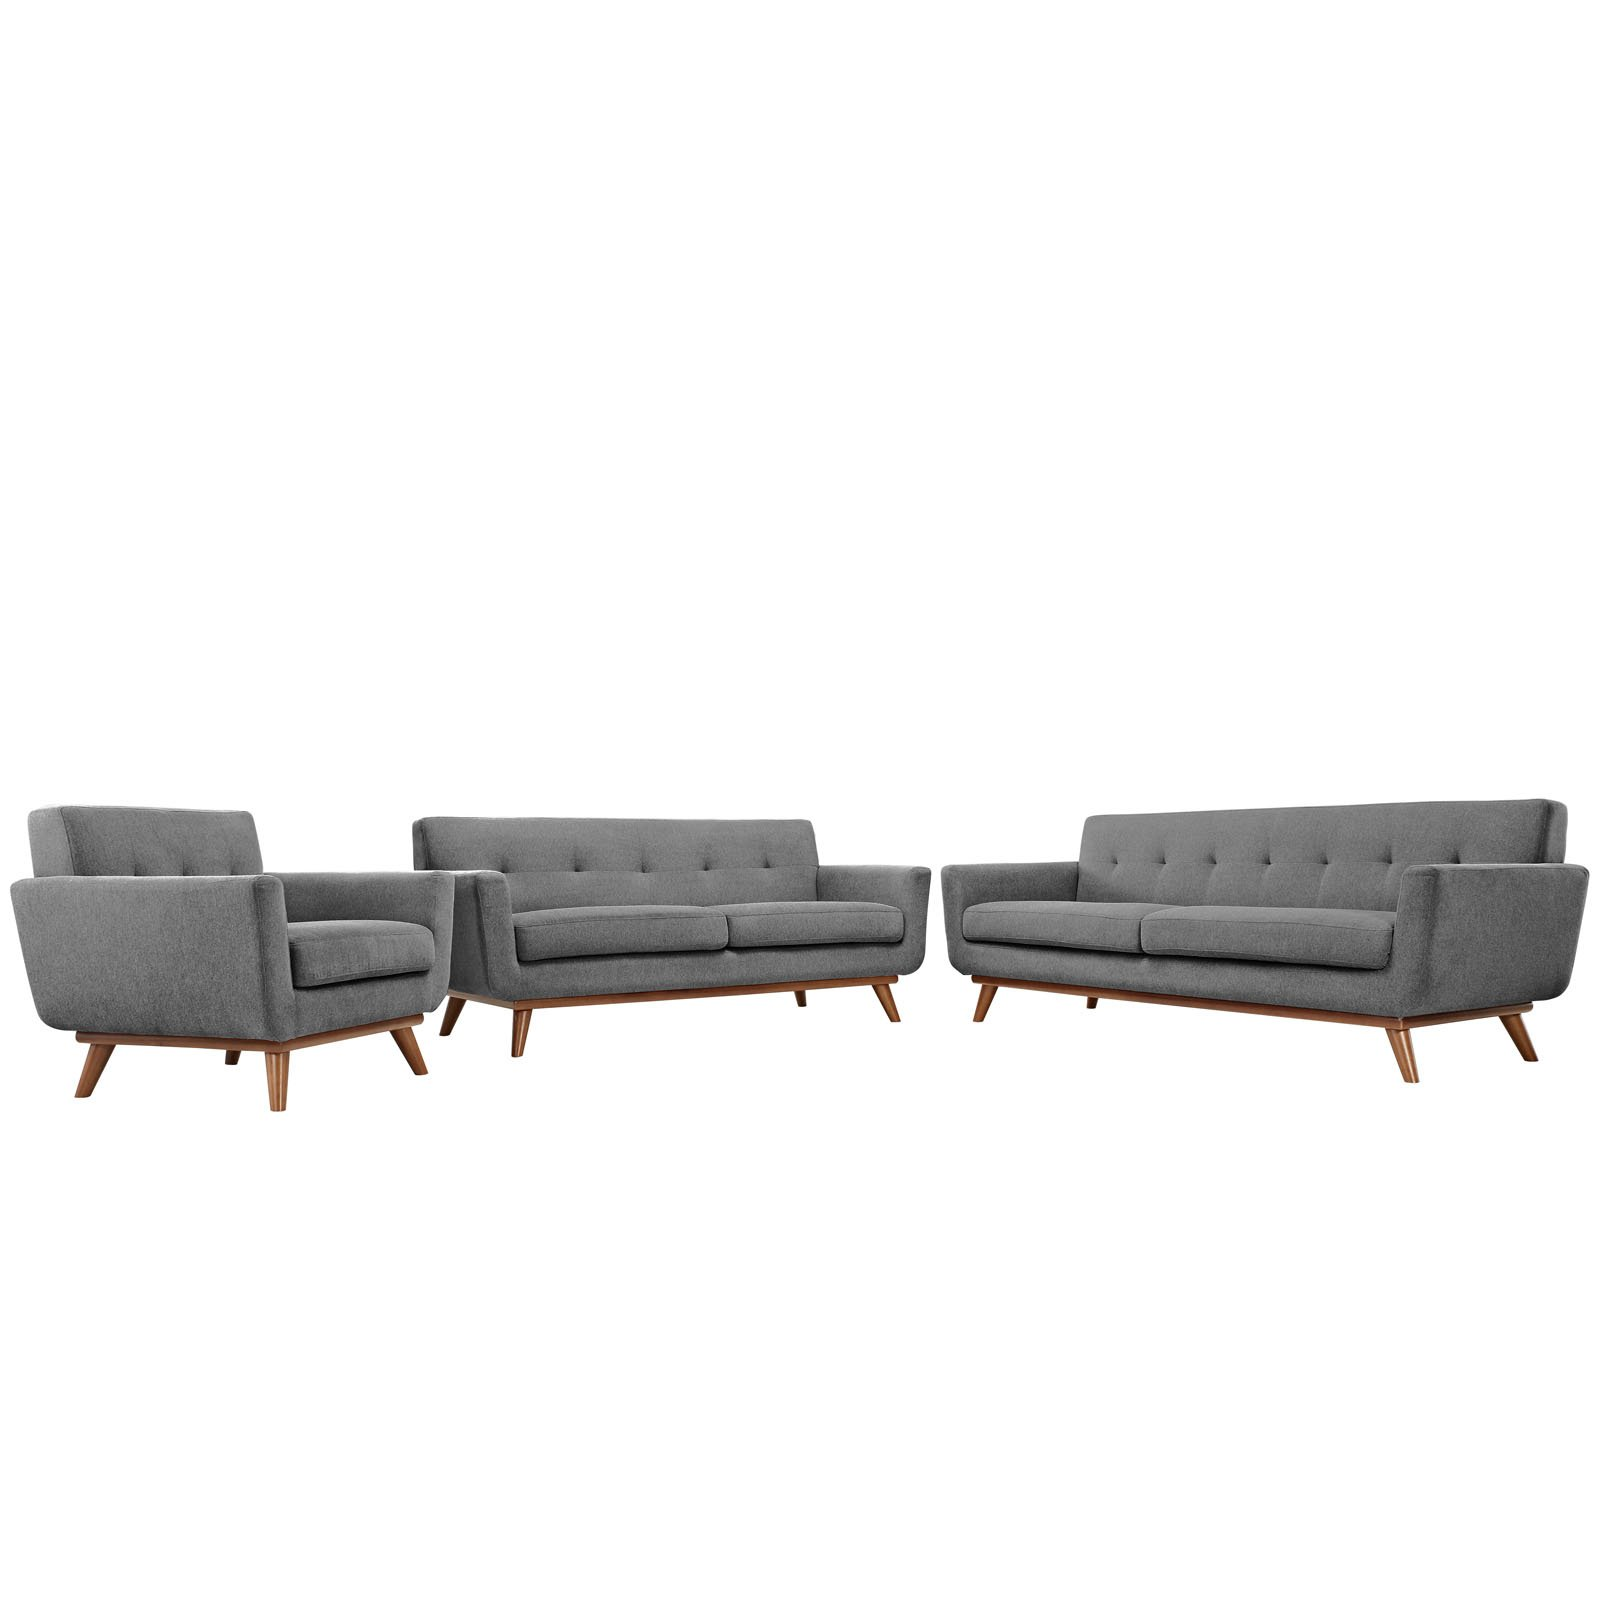 Modway Engage Mid-Century Modern Upholstered Fabric Sofa, Loveseat and Armchair, Set of 3 in Expectation Gray by Modway